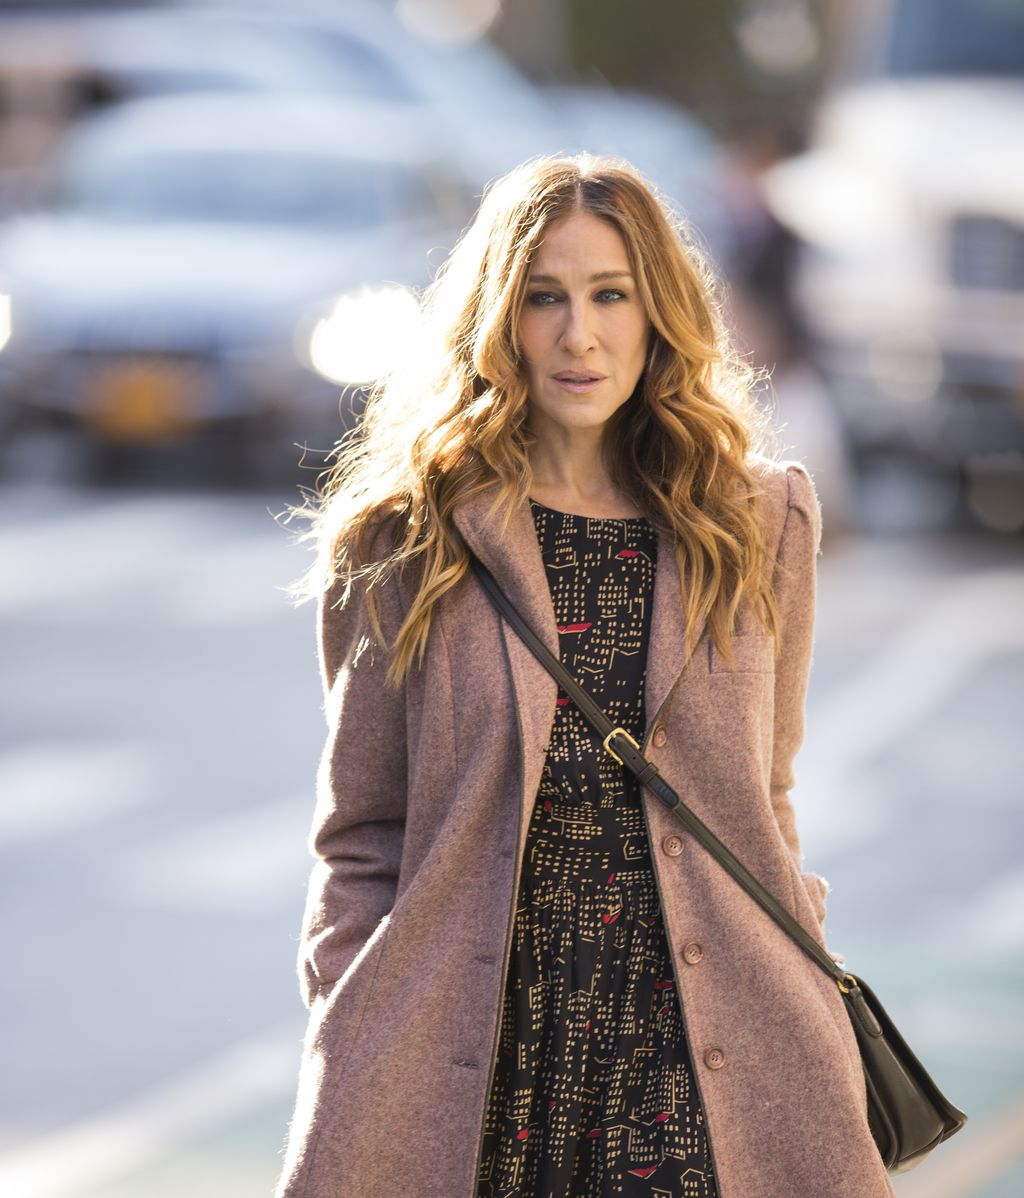 Sarah Jessica Parker. Divorce. HBO